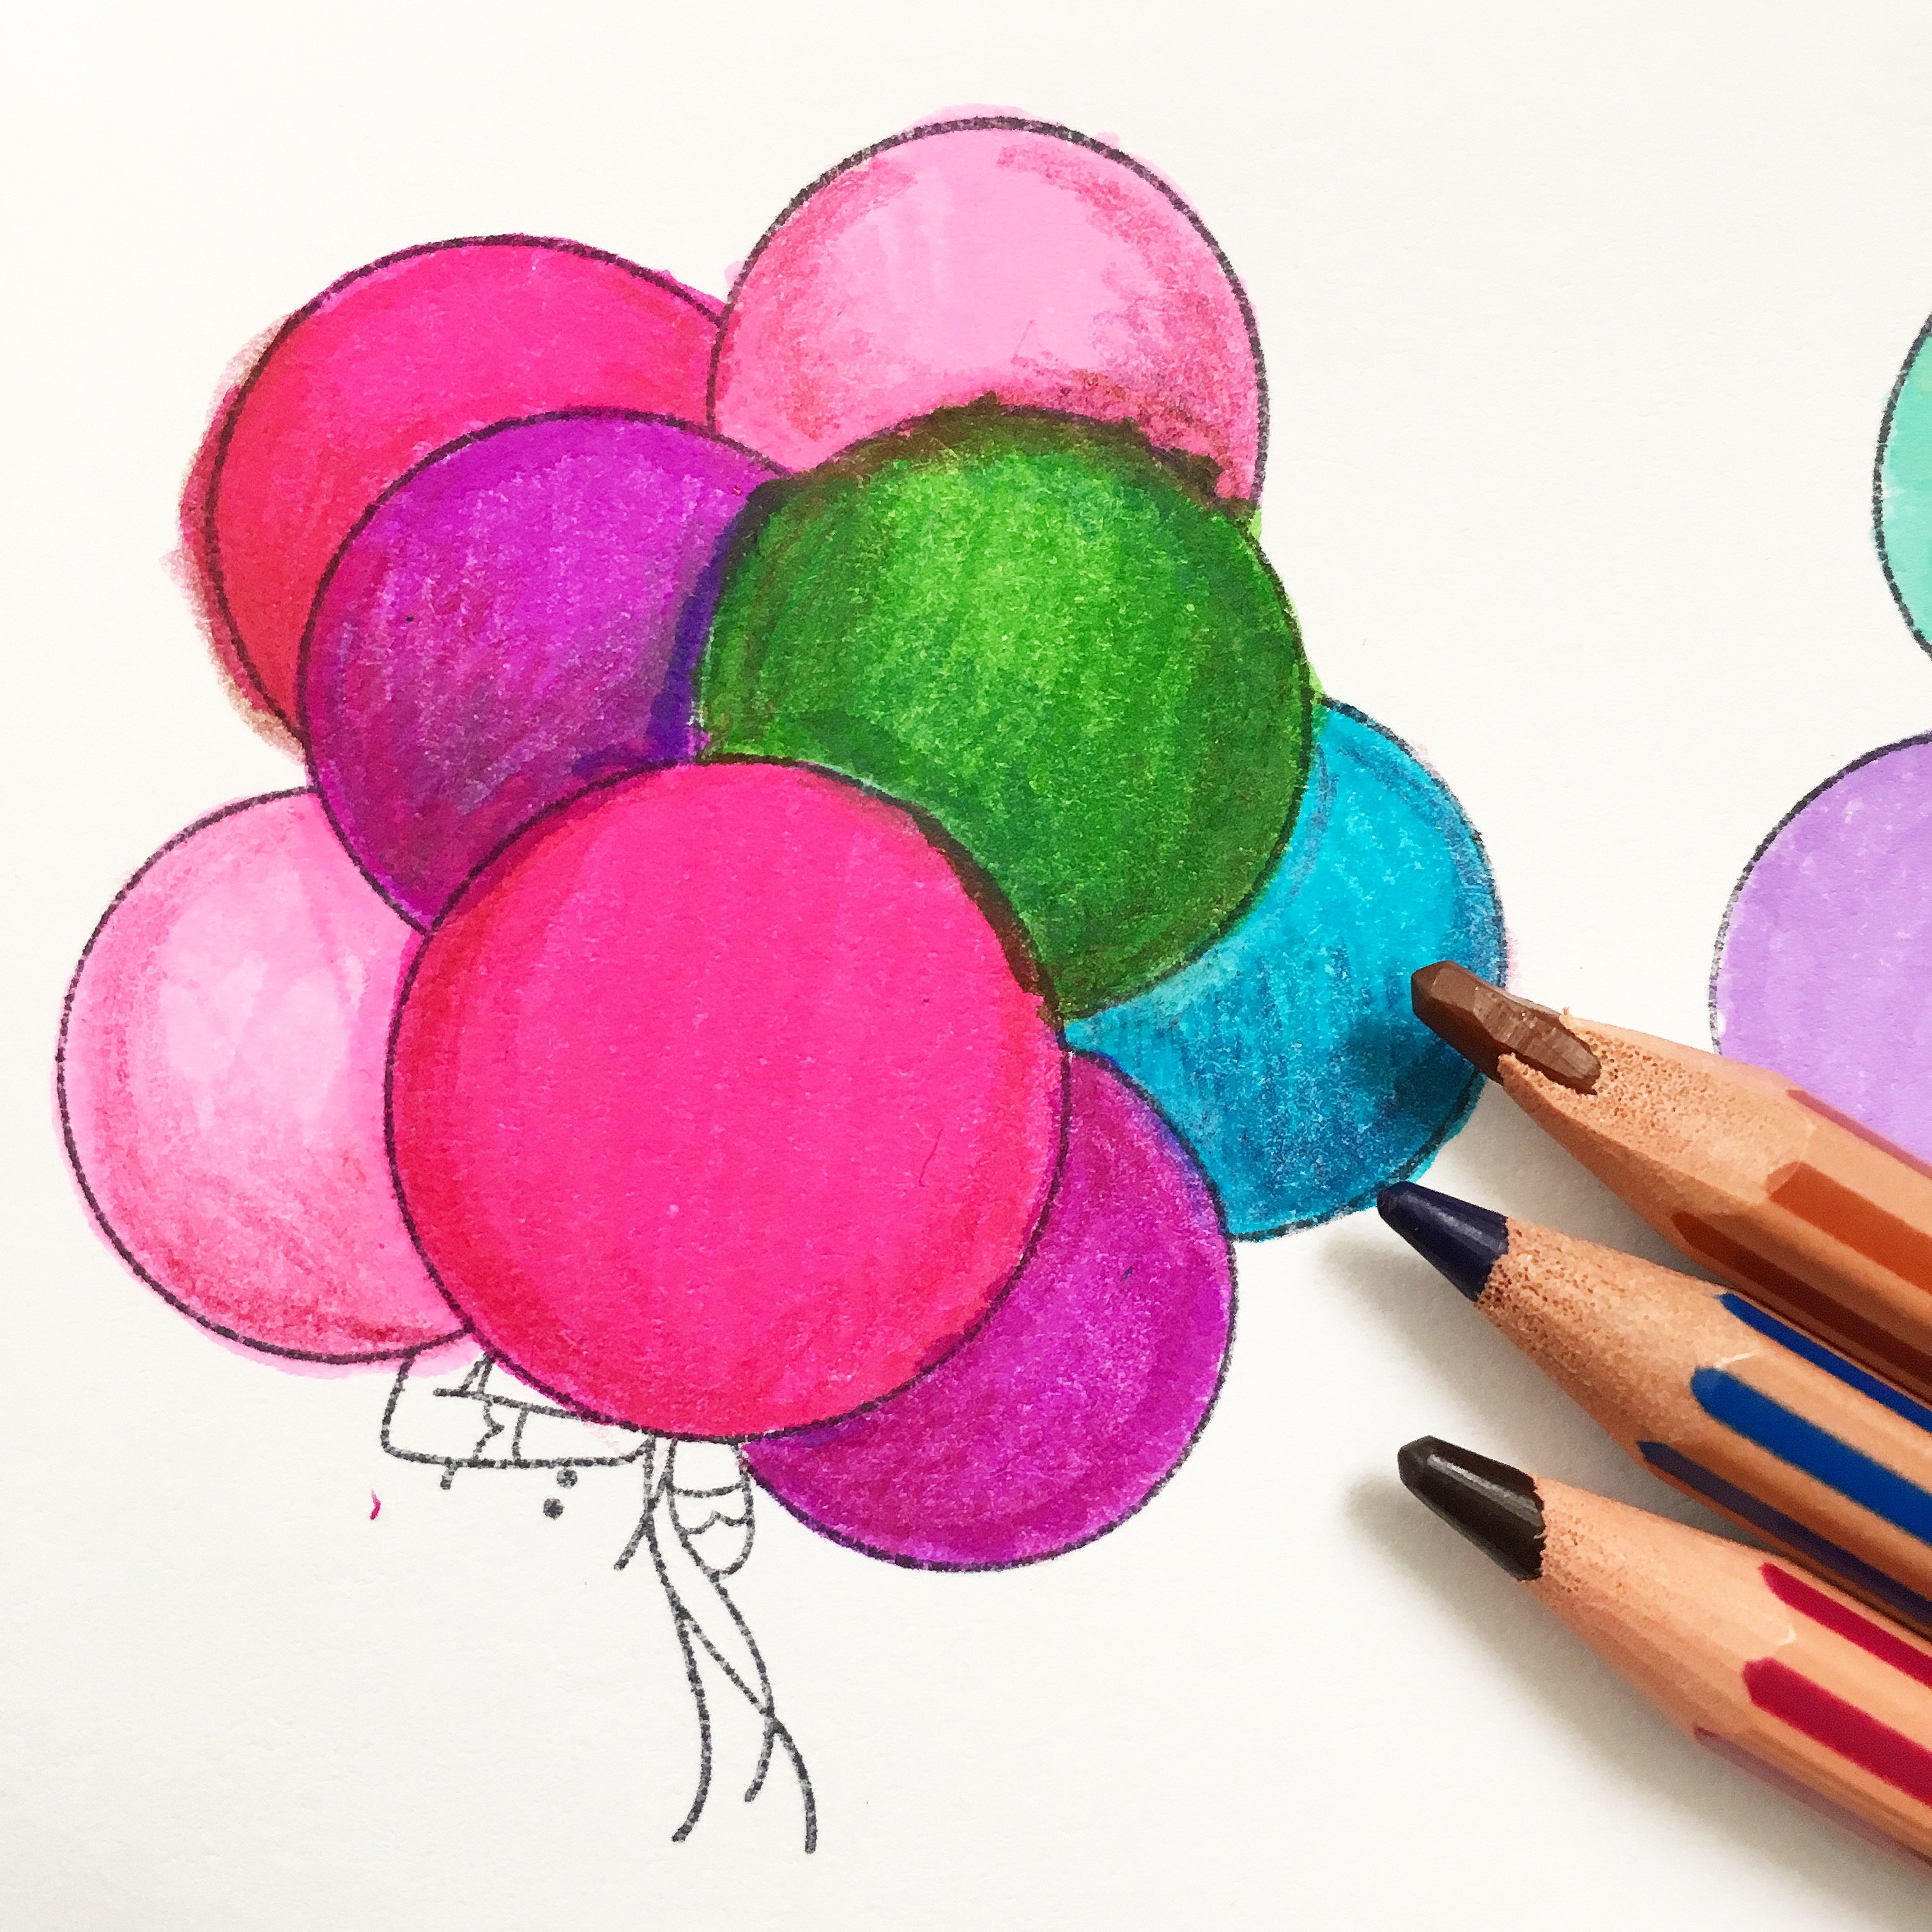 green, pink, purple and blue balloons, coloured with markers and pencils